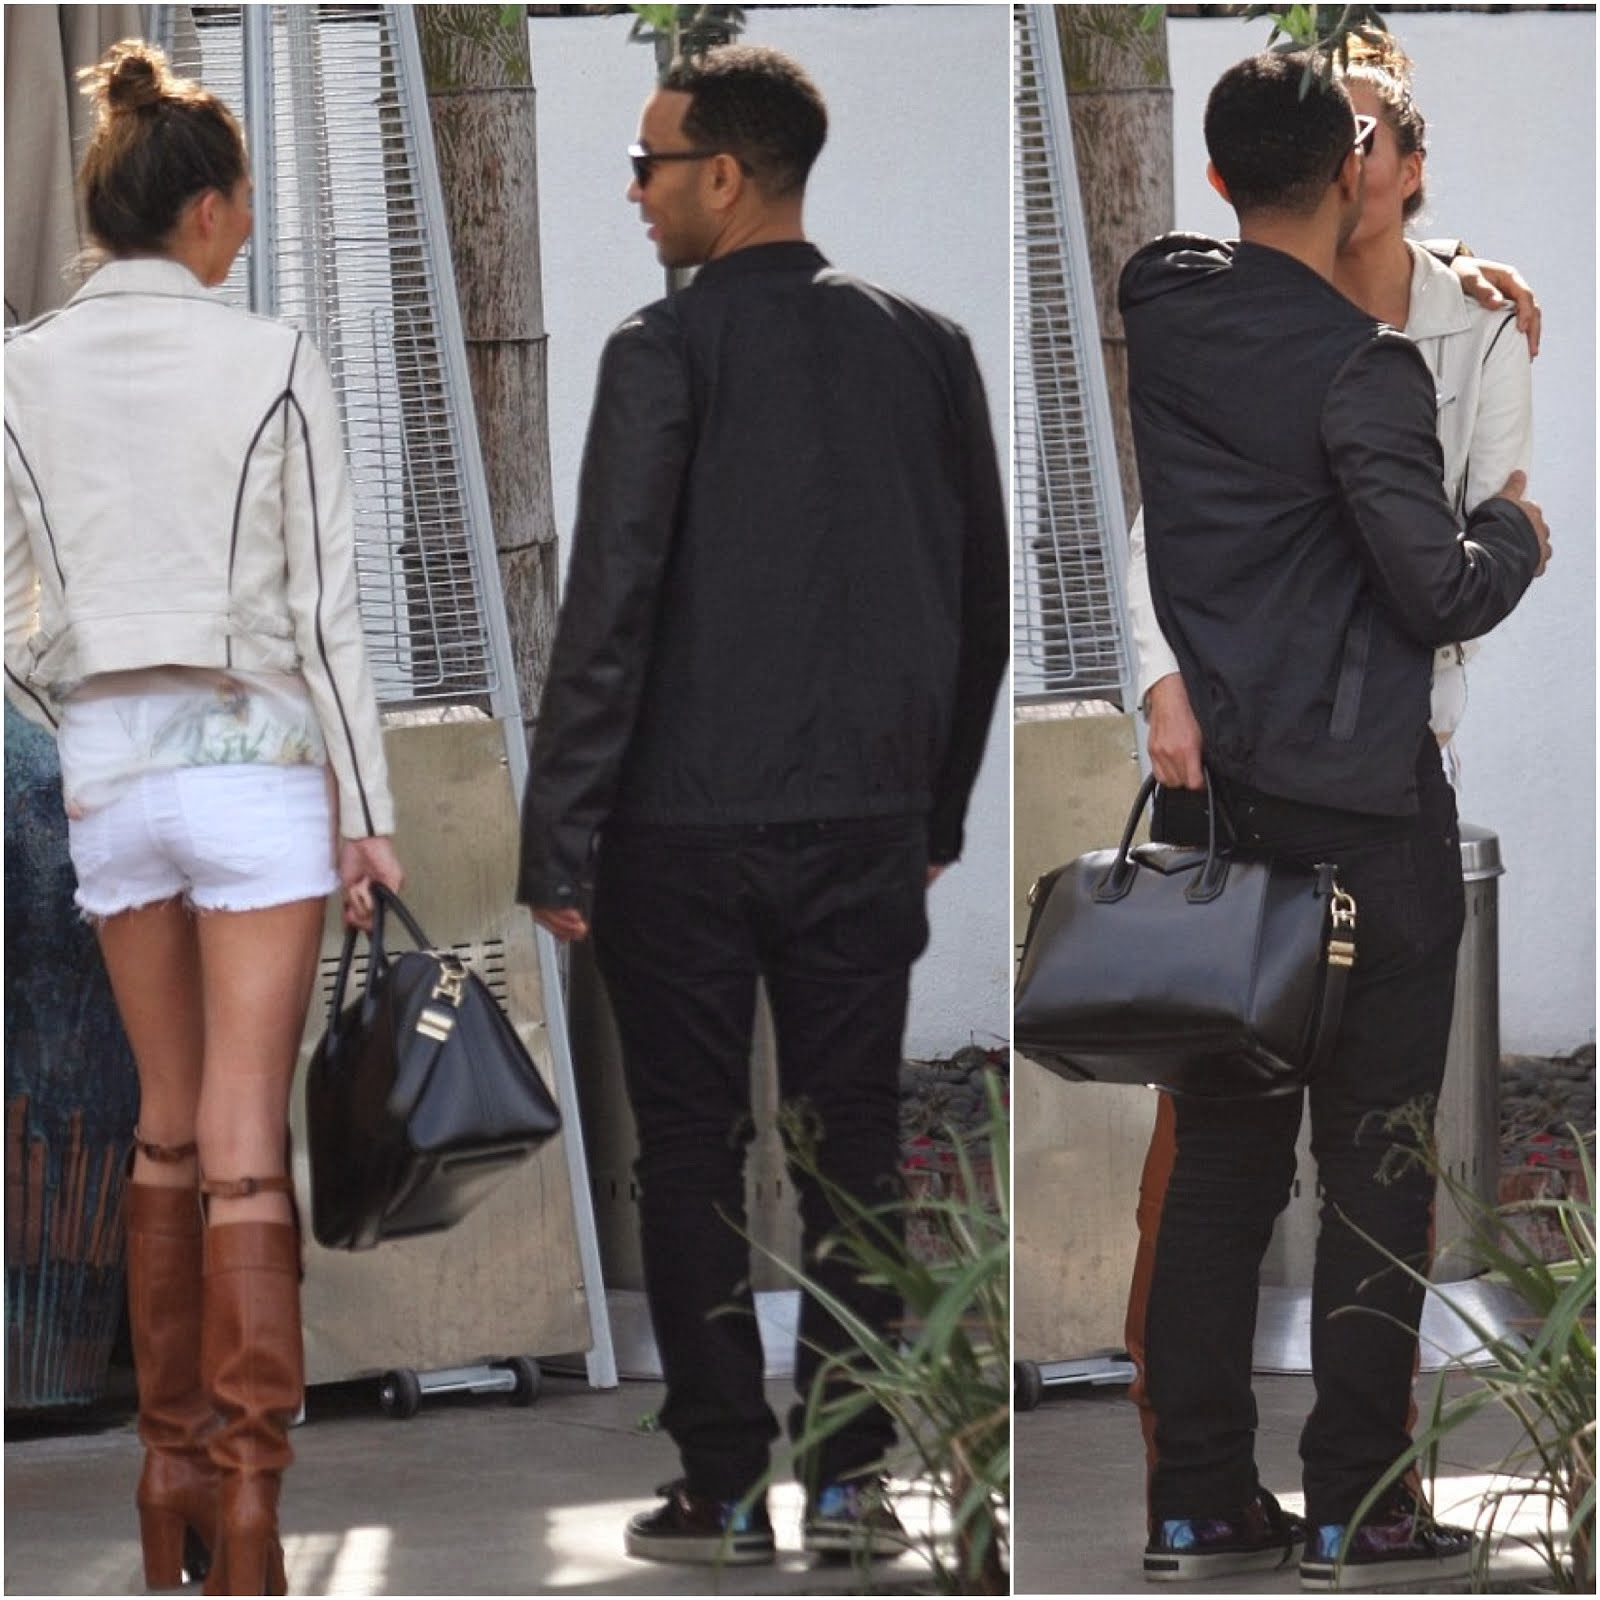 John Legend's Givenchy t-shirt and Jimmy Choo sneakers - Hollywood Street Style